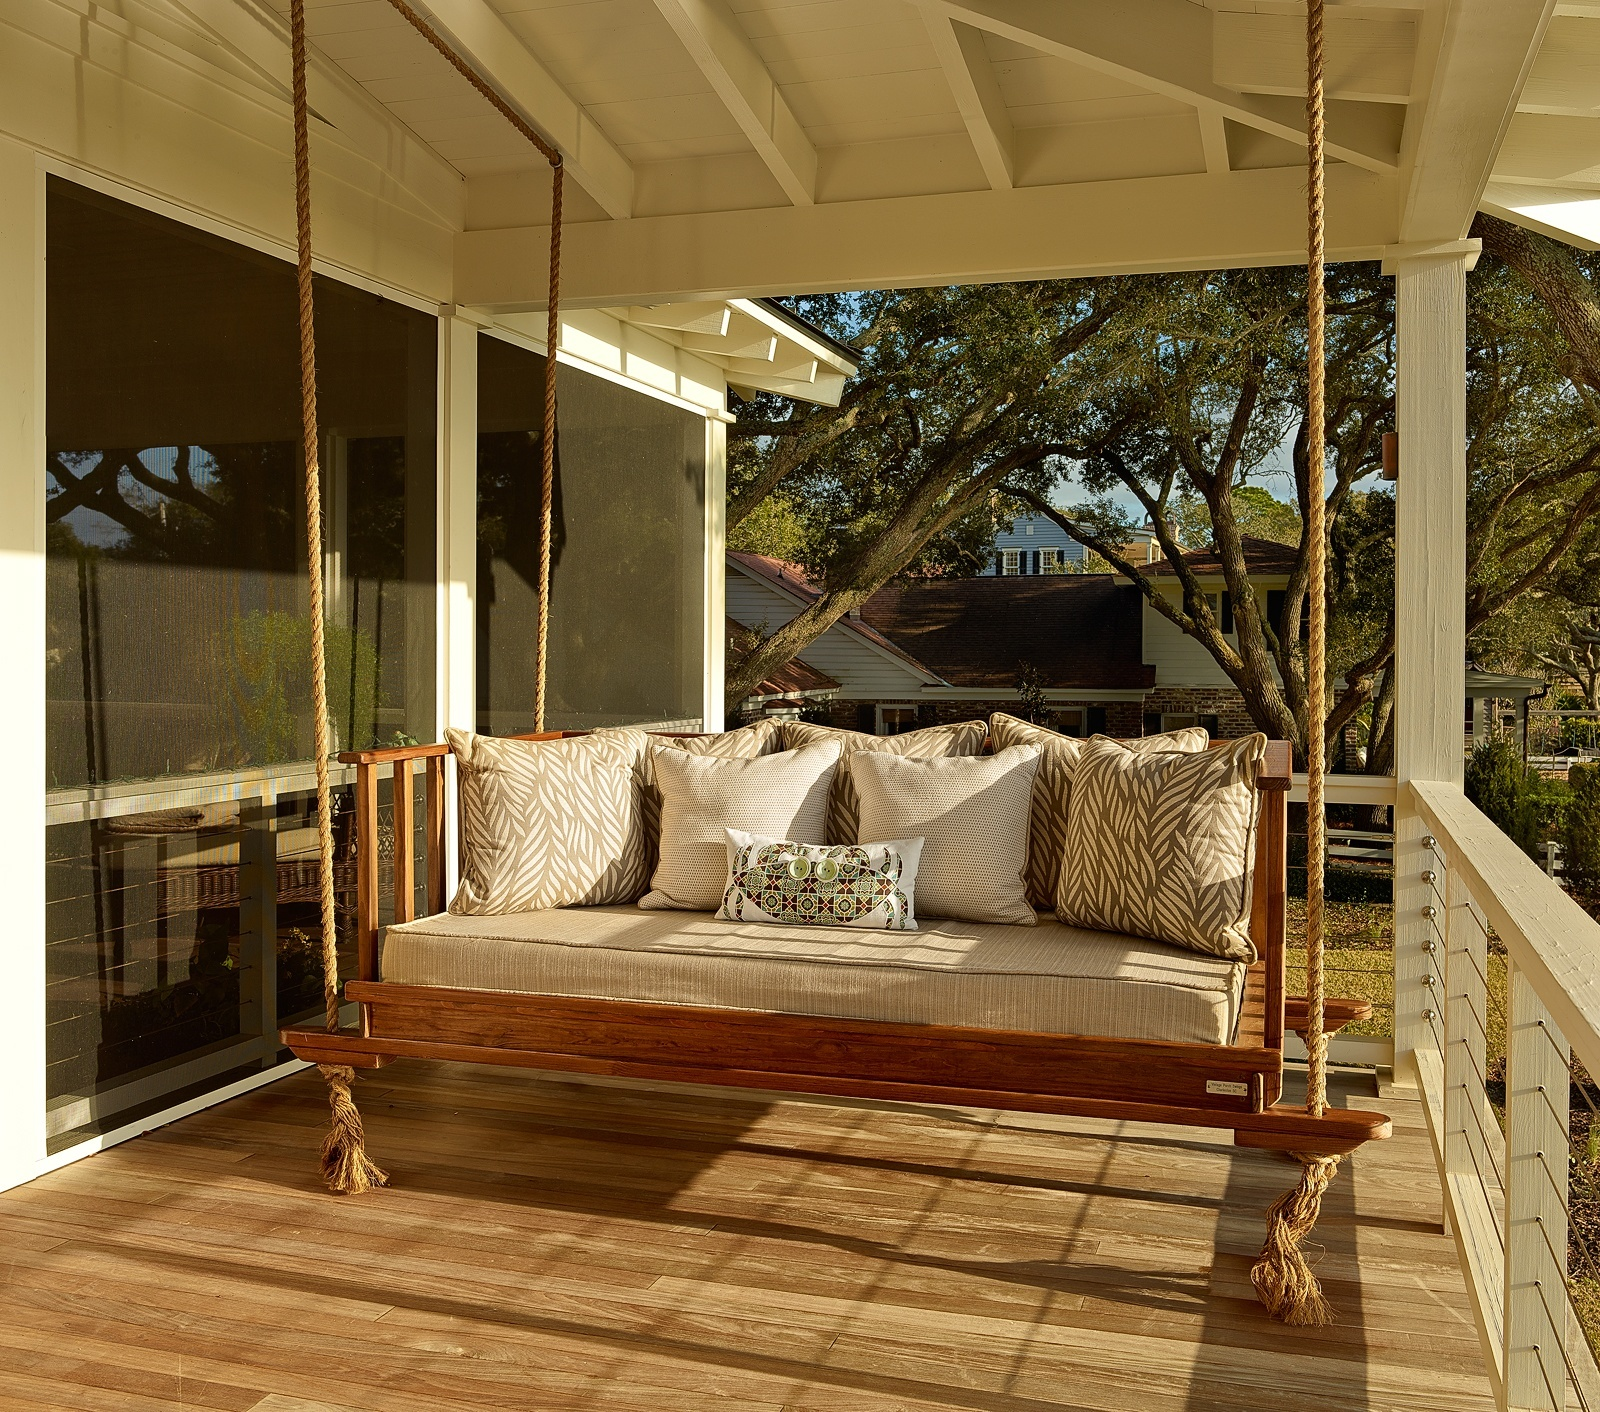 Hollywoodschaukel Balkon Getting Ready For Summer: Enliven Your Porch With Comfy Swings